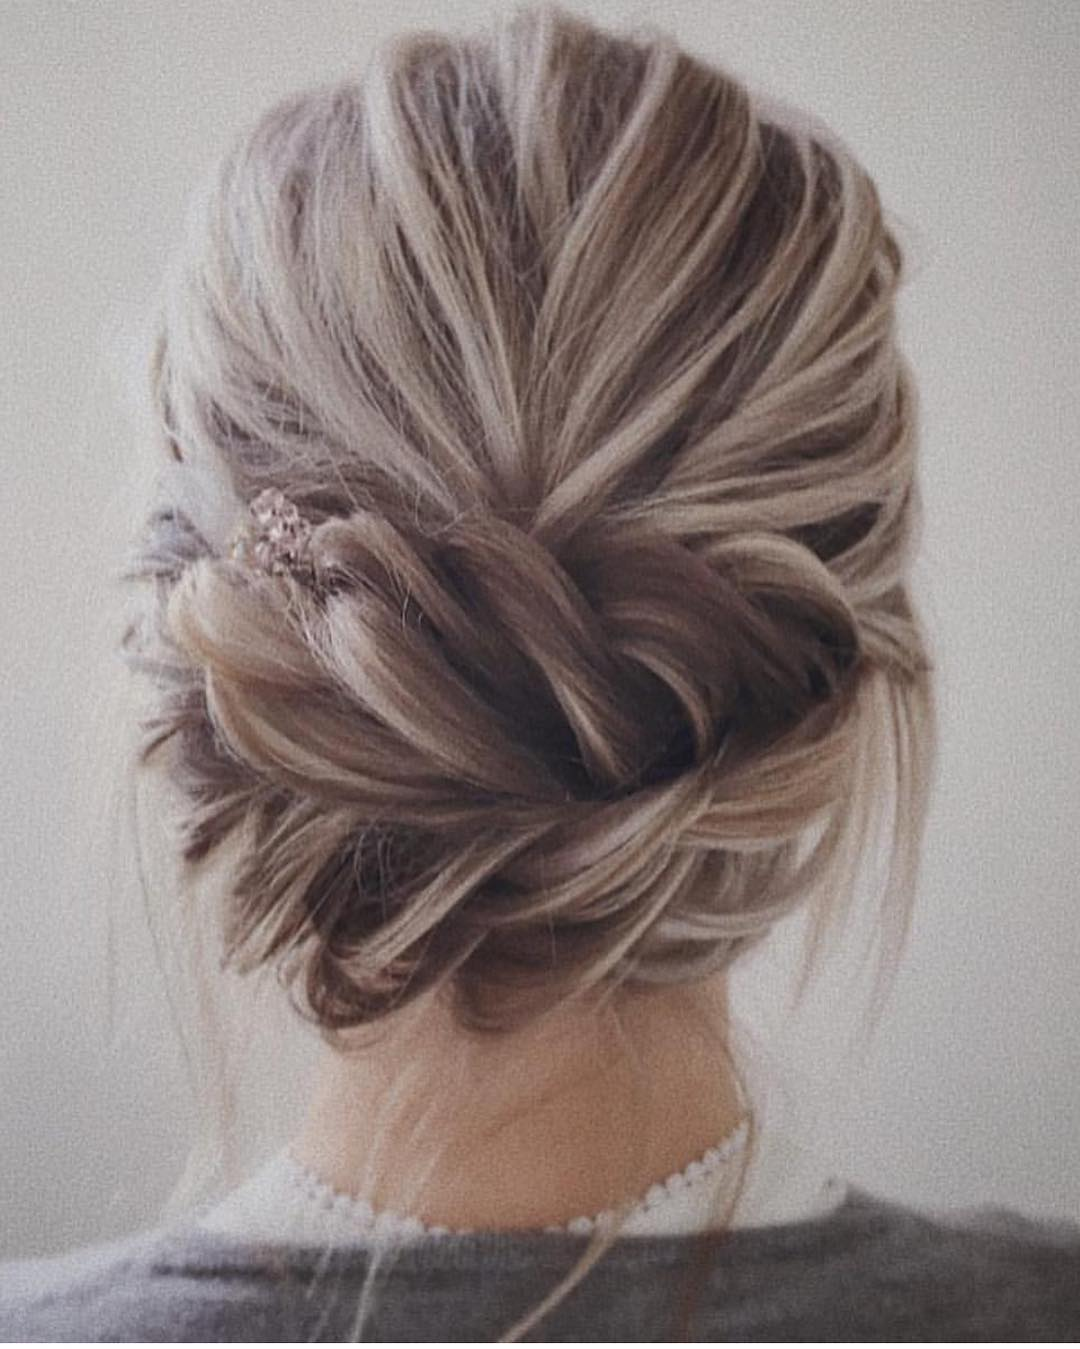 High Fashion Braid Updo